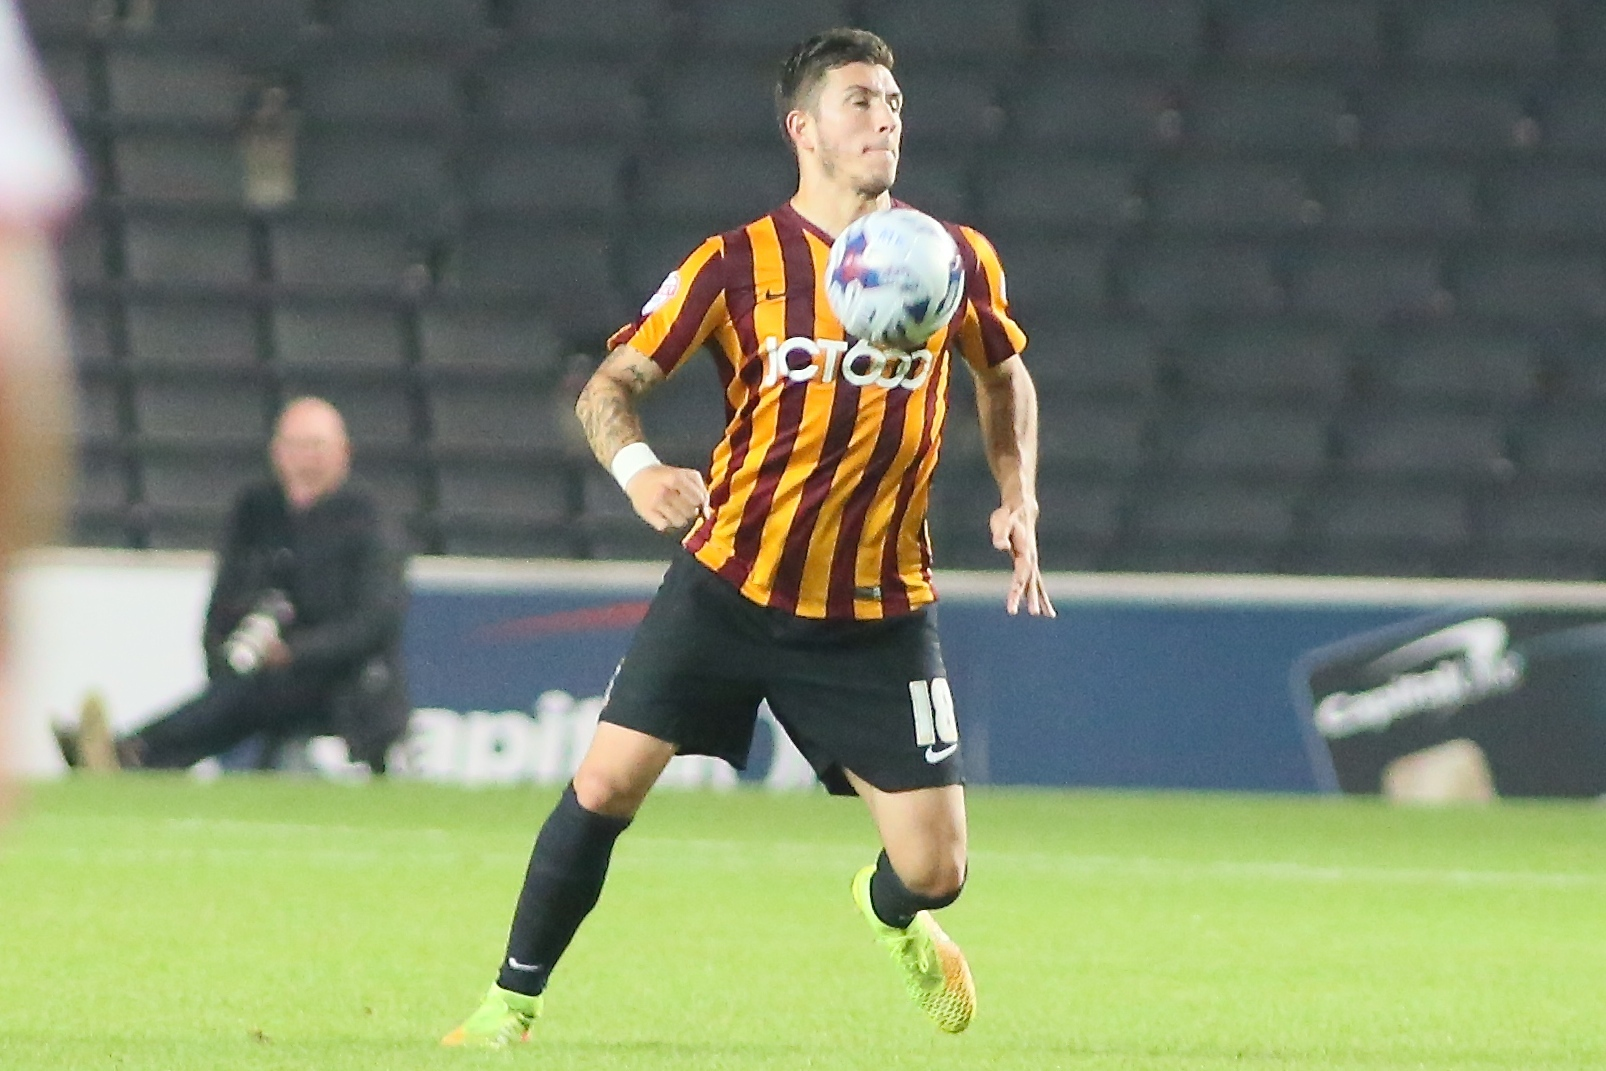 Chris Routis adapted to a move to midfield after joining City last summer as a centre half